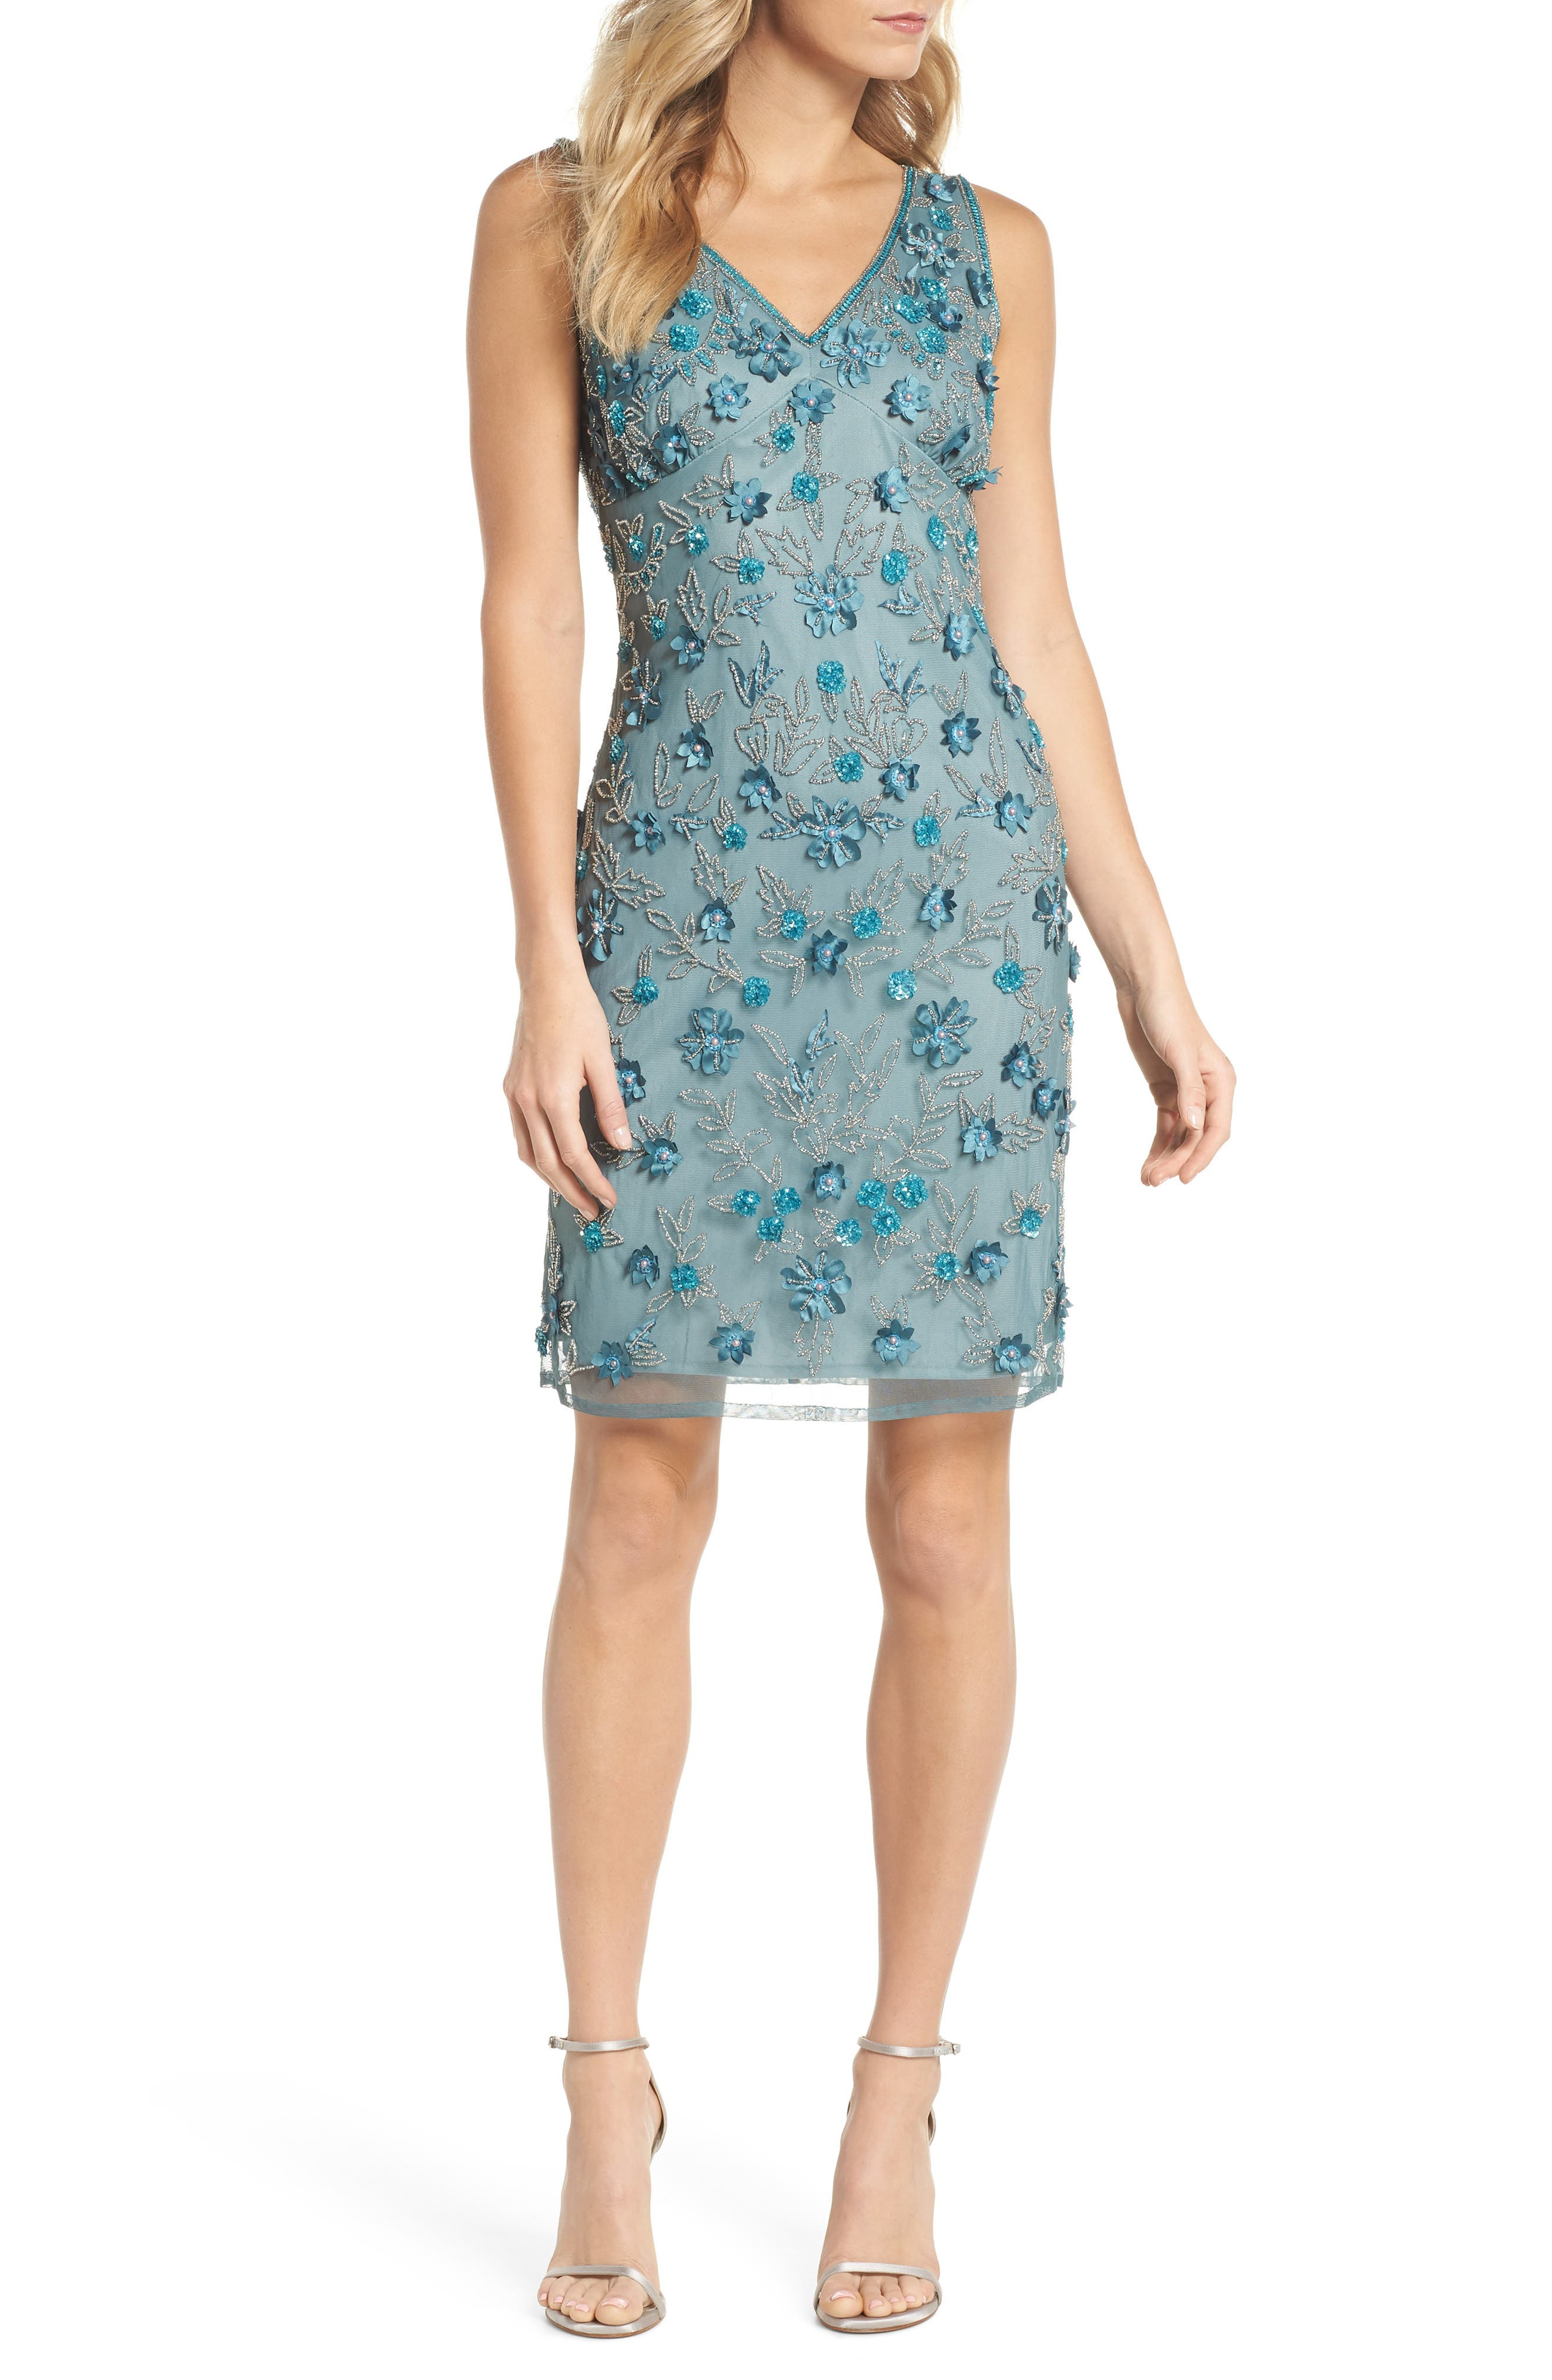 3D Floral Embellished Sheath Dress,                         Main,                         color, 400